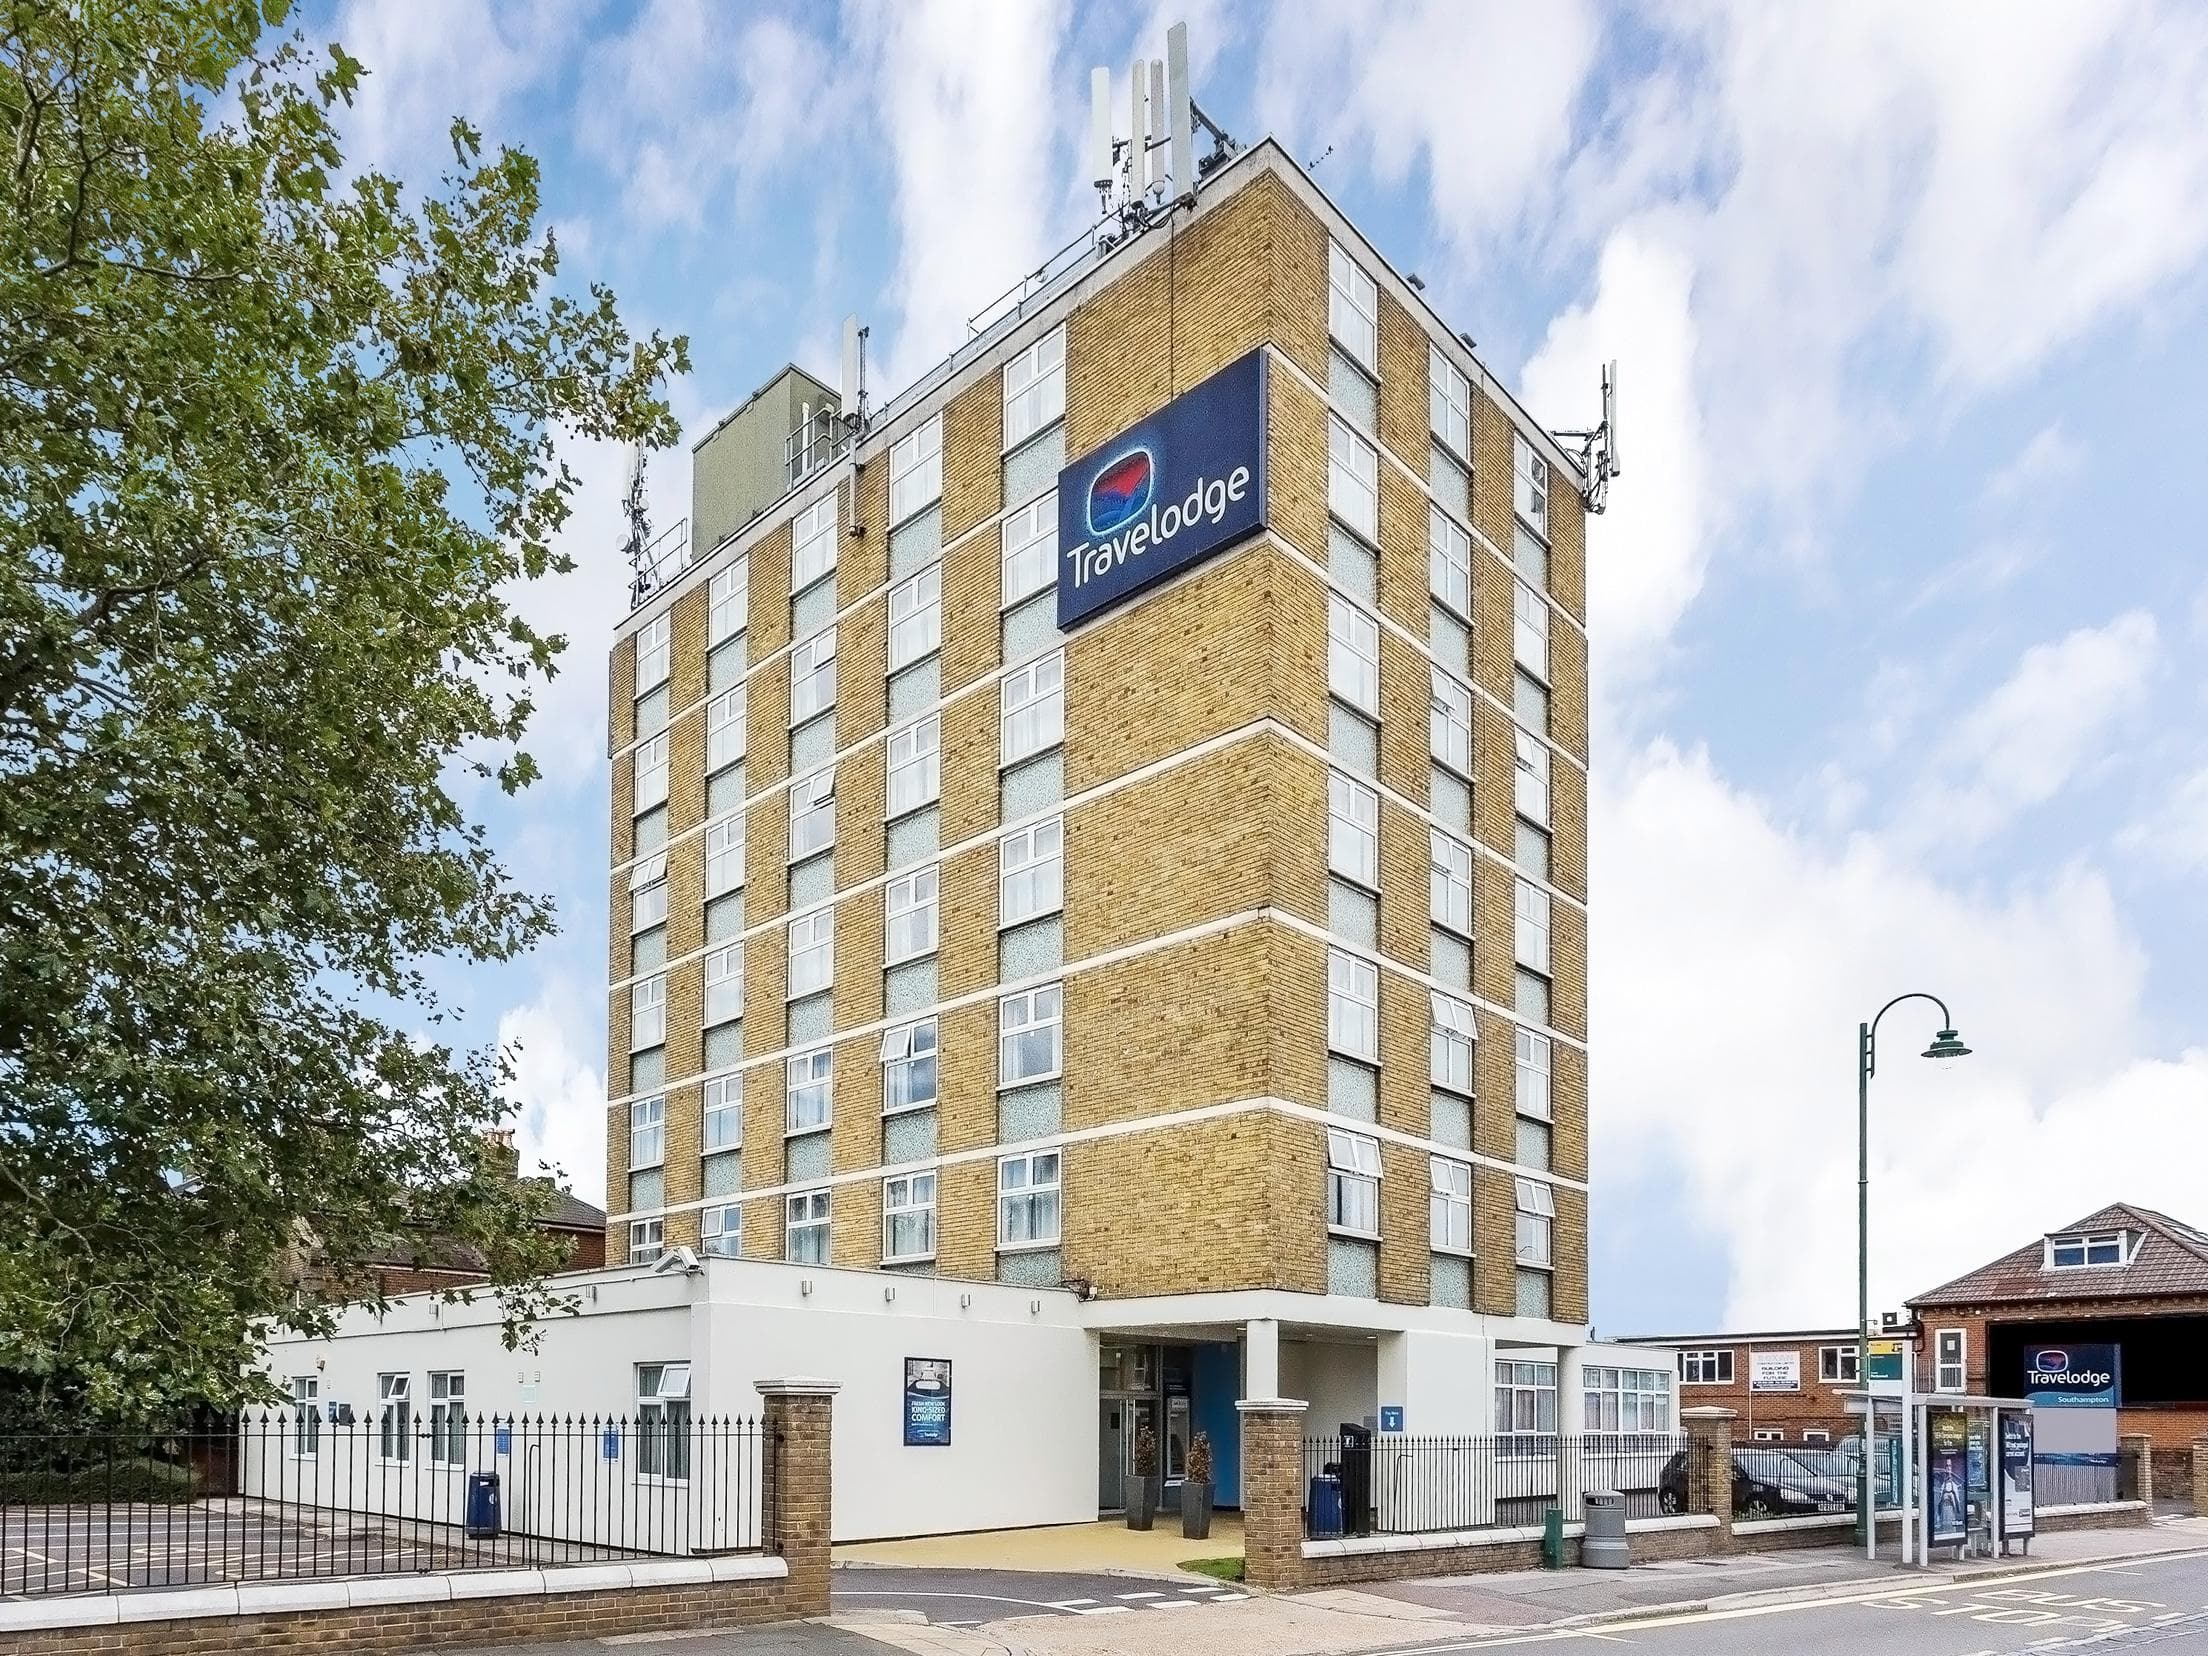 Travelodge Southampton Hotel Southampton Hotels